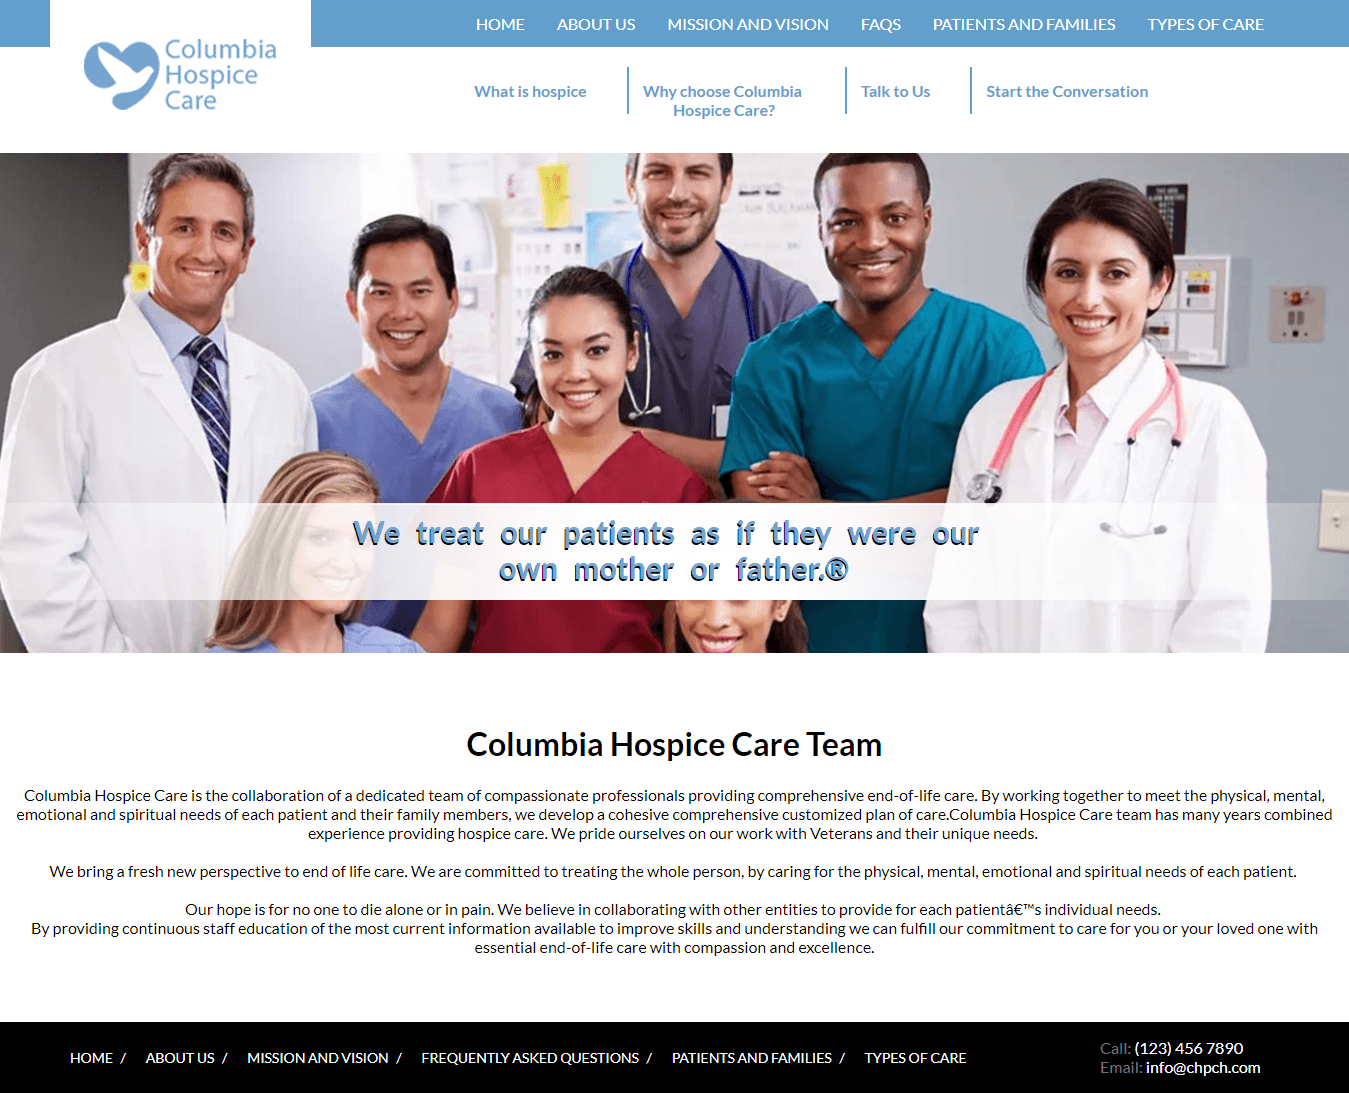 Columbia-Hospice-Care-about